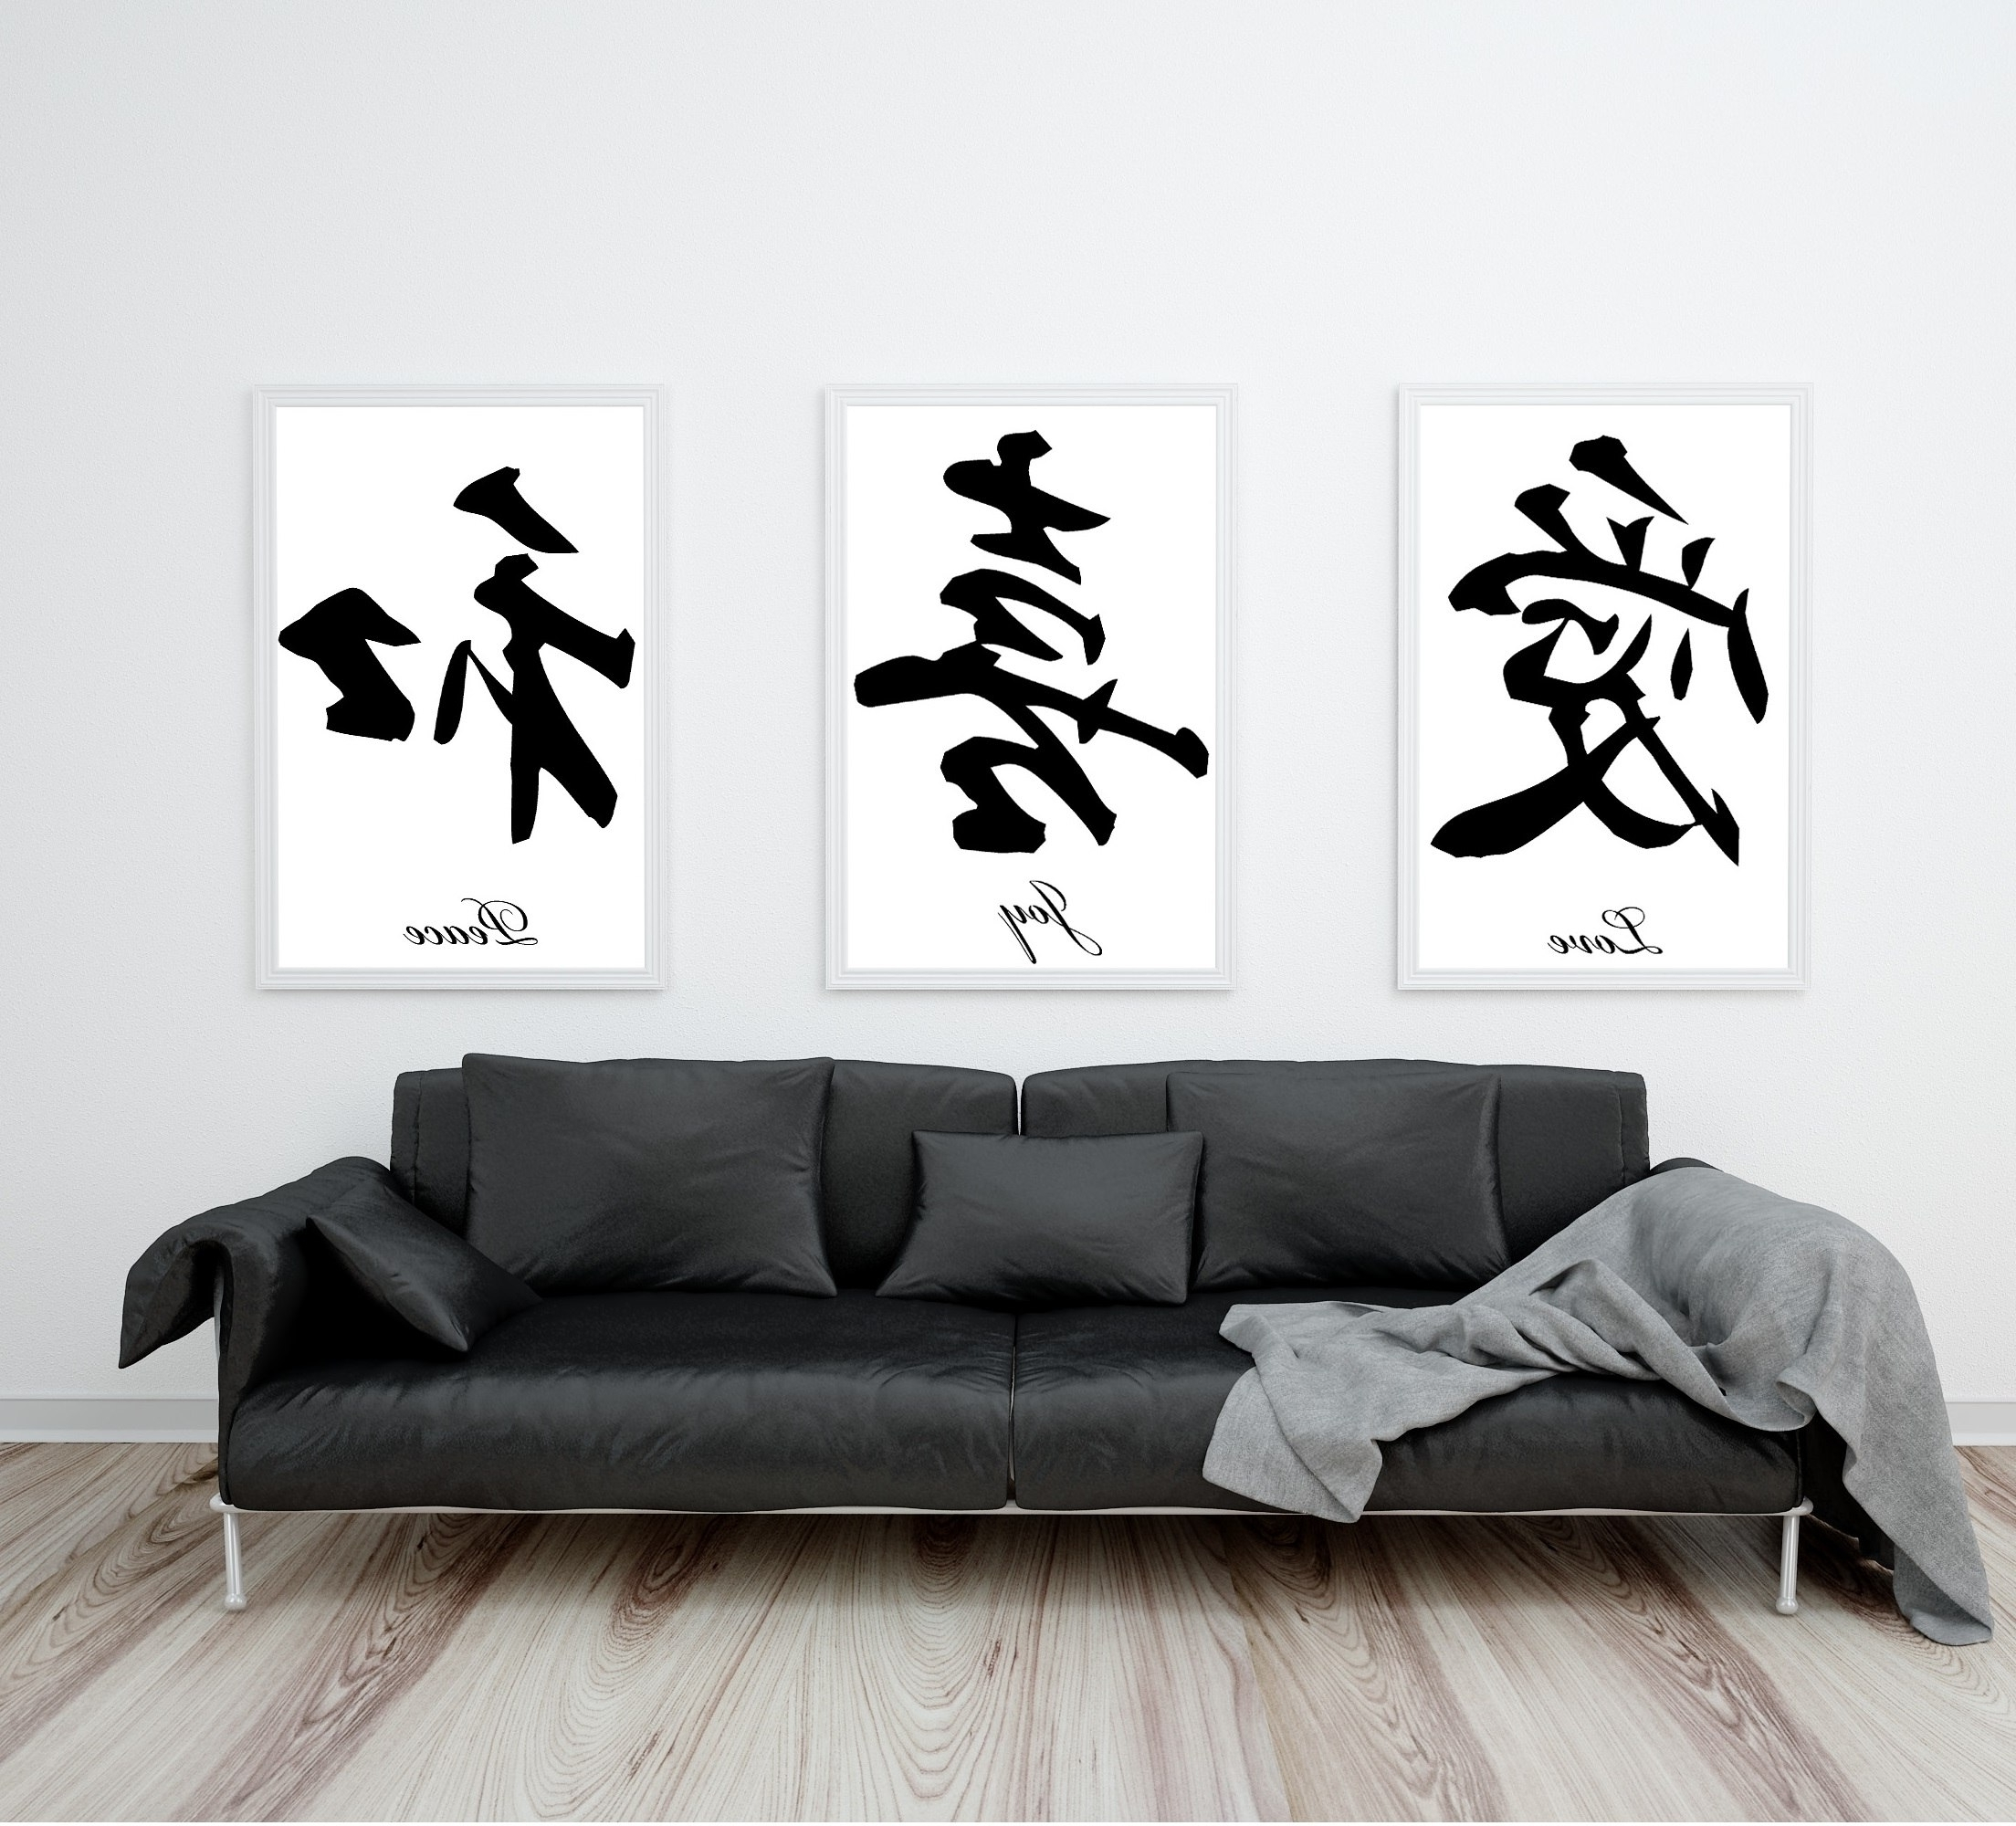 Japanese Wall Art Intended For Popular Japanese Wall Decor (View 7 of 15)